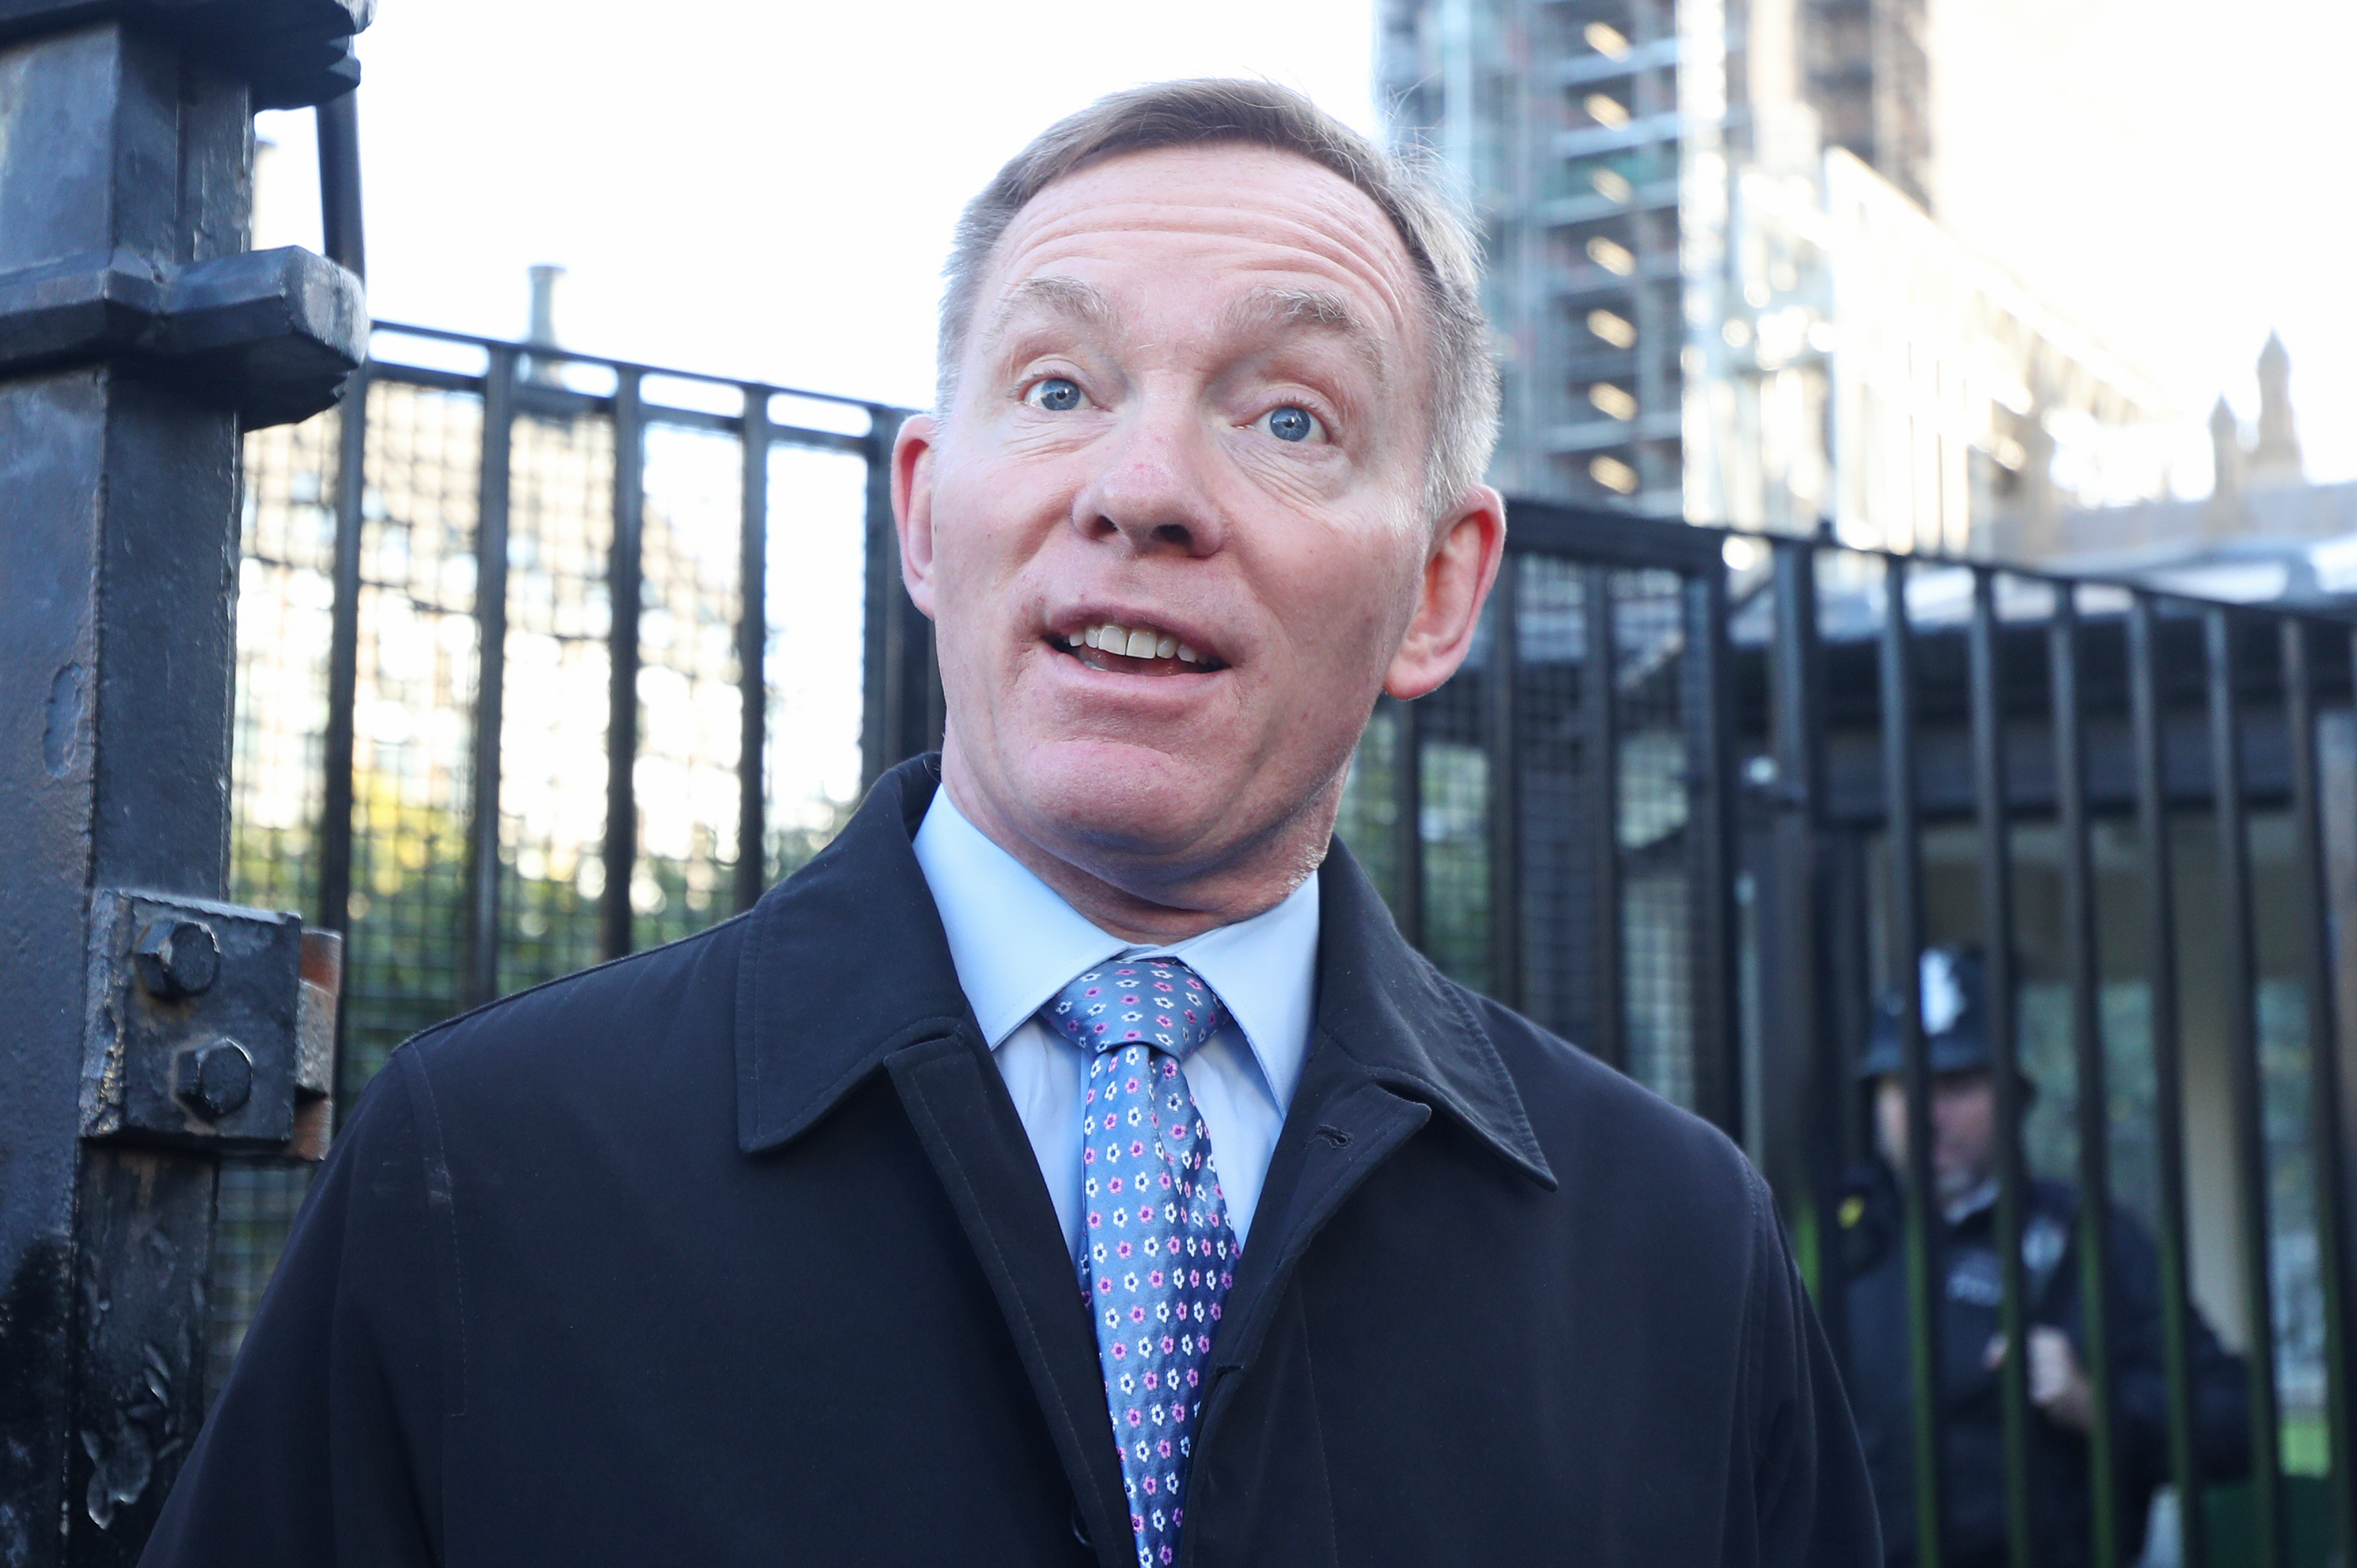 """Labour MP Chris Bryant outside the Houses of Parliament in London ahead of Prime Minister Boris Johnson delivering a statement in the House of Commons on his new Brexit deal after the EU Council summit, on what has been dubbed """"Super Saturday"""". (Photo by Yui Mok/PA Images via Getty Images)"""